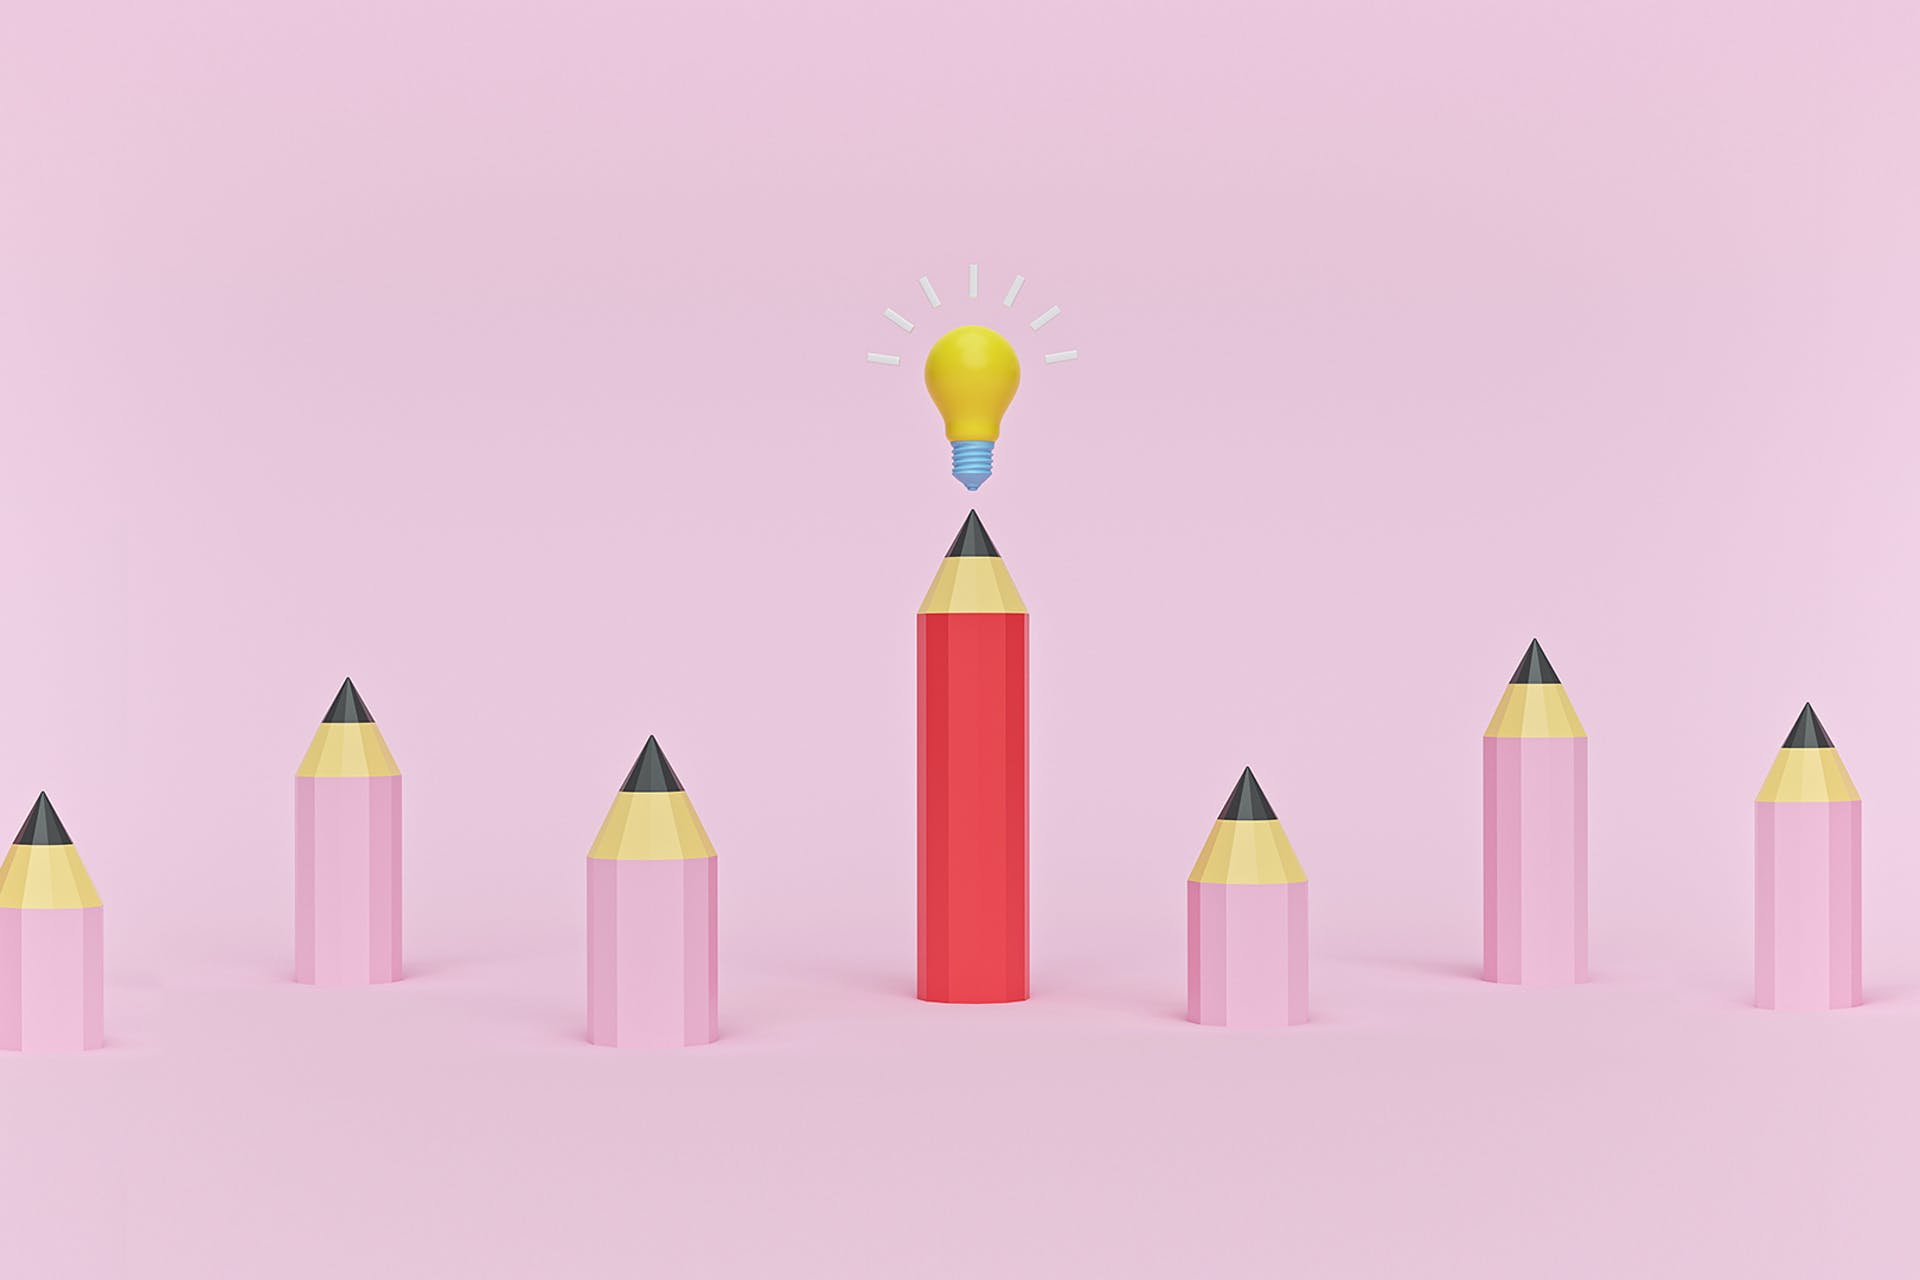 A group of six small pink pencils and a large red pencil with a lightbulb on top of it. This image describes the process a writer or marketer may go through when developing content marketing ideas.